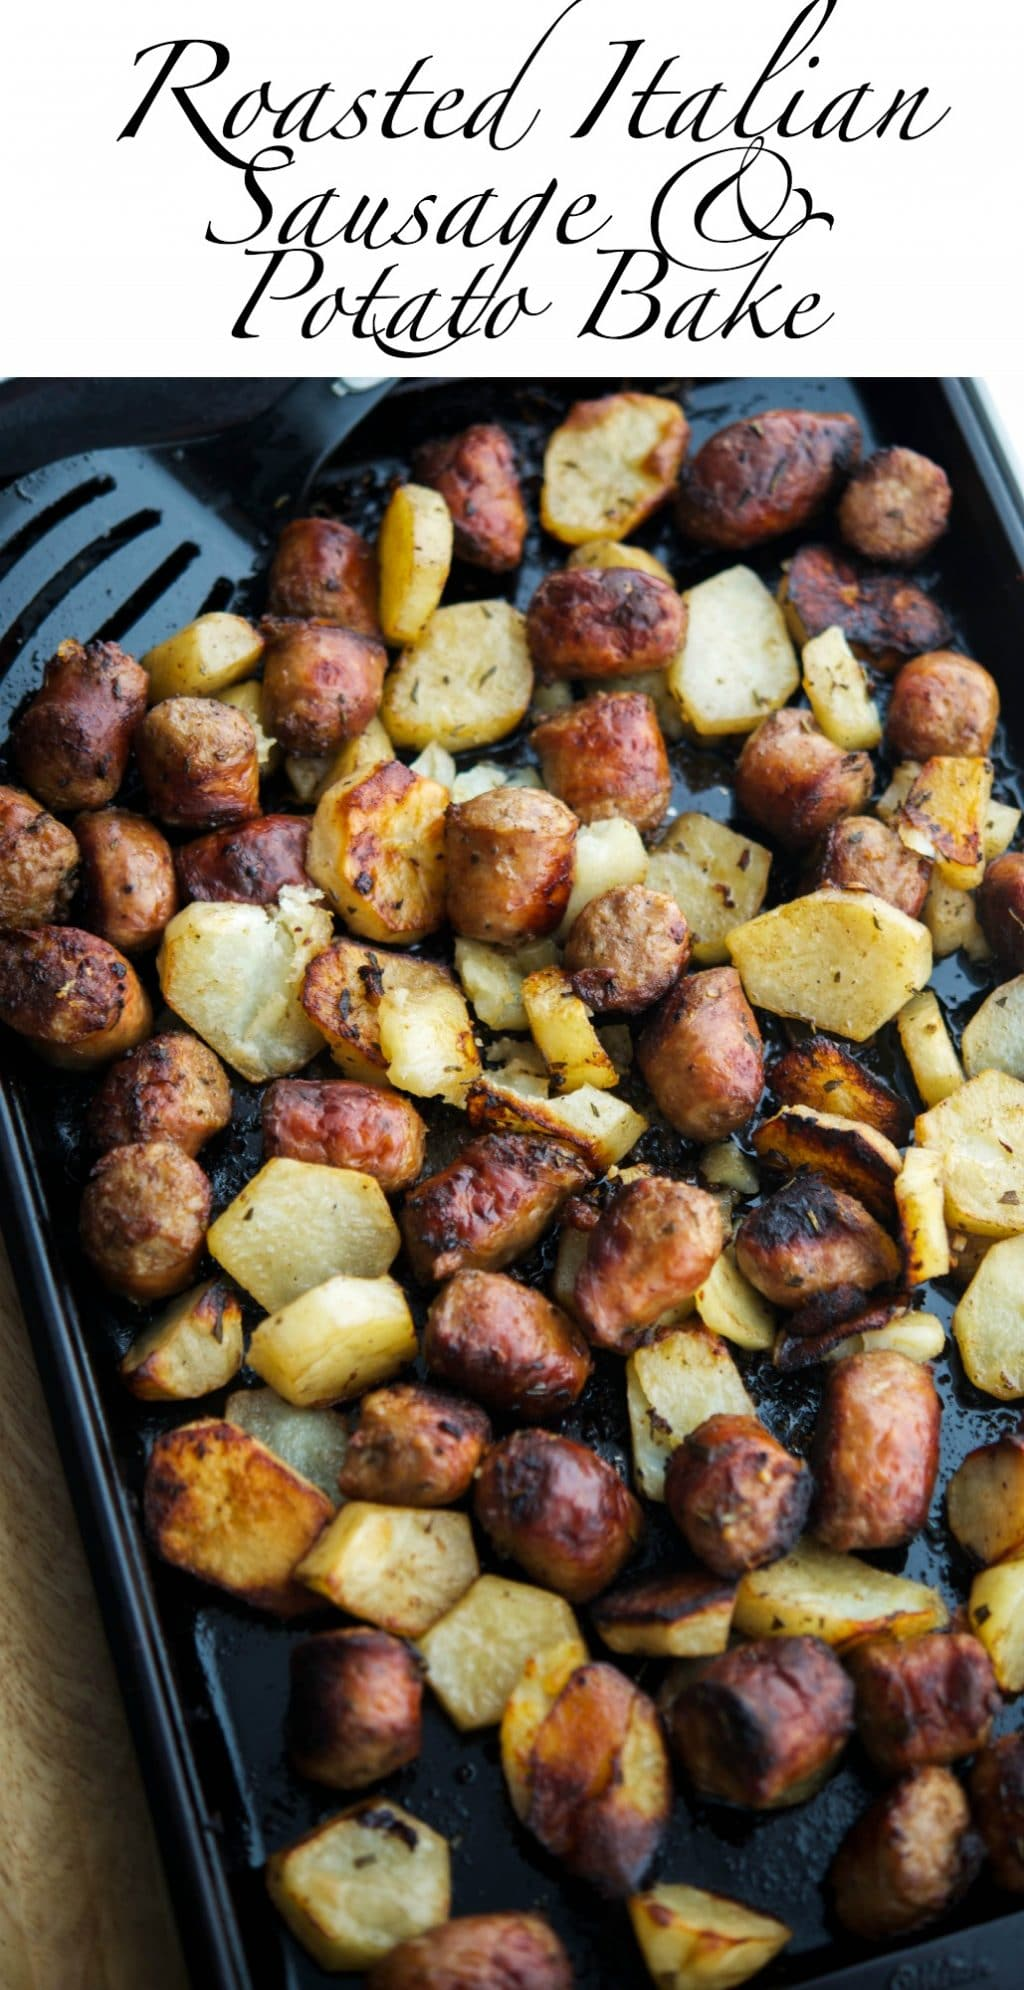 Whether it's for a weeknight supper, special occasion or family gathering, this recipe for Roasted Italian Sausage & Potato Bake will make everyone happy. #sausage #potatoes #sheetpan